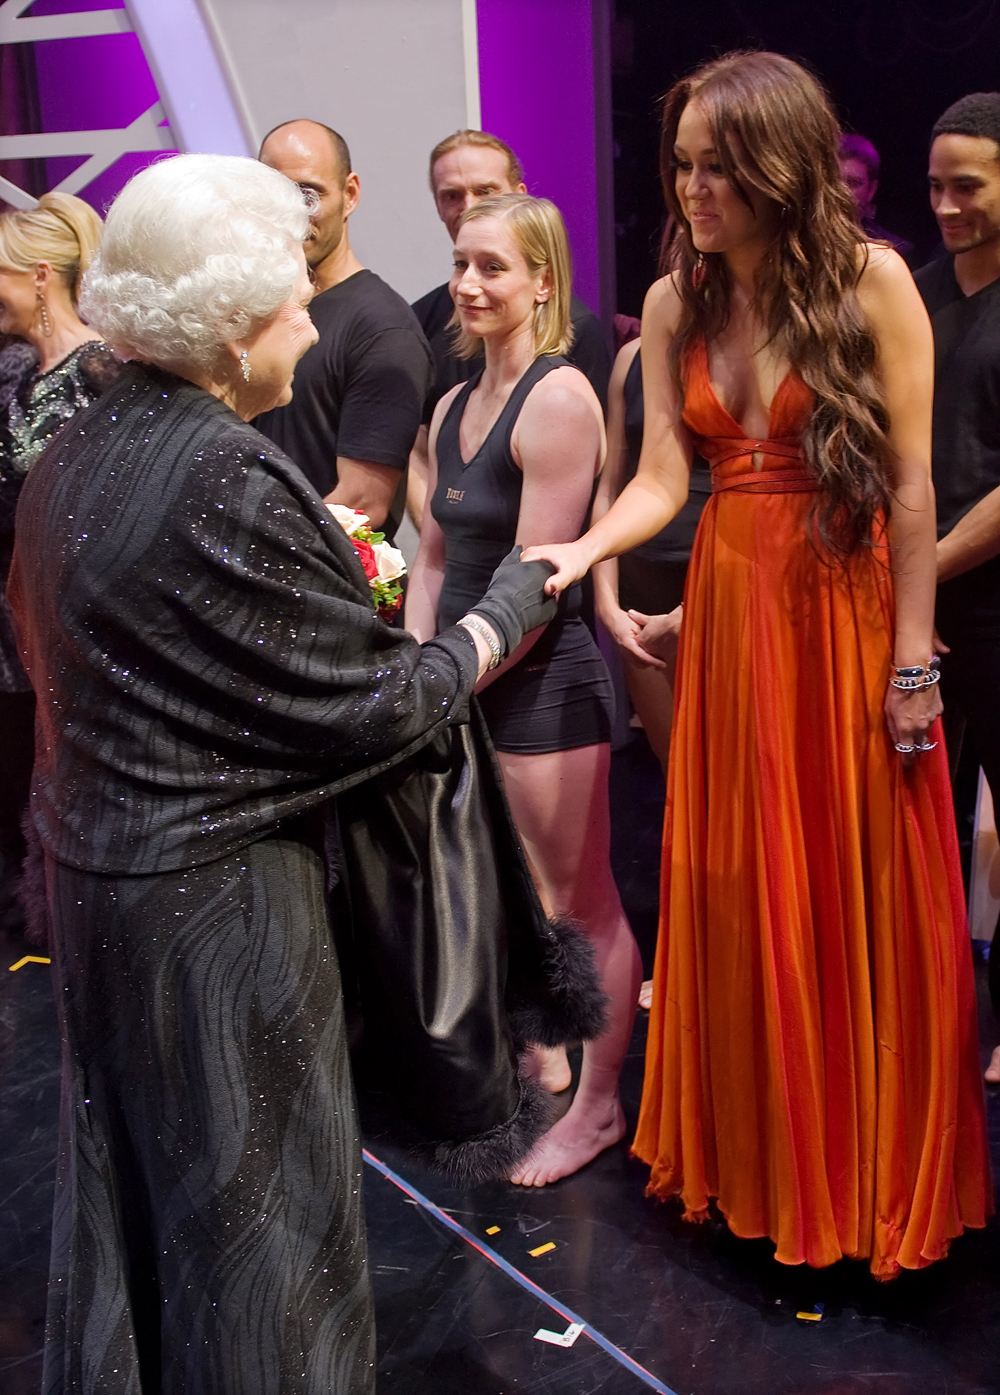 Miley Cyrus met Queen Elizabeth II of the U.K.